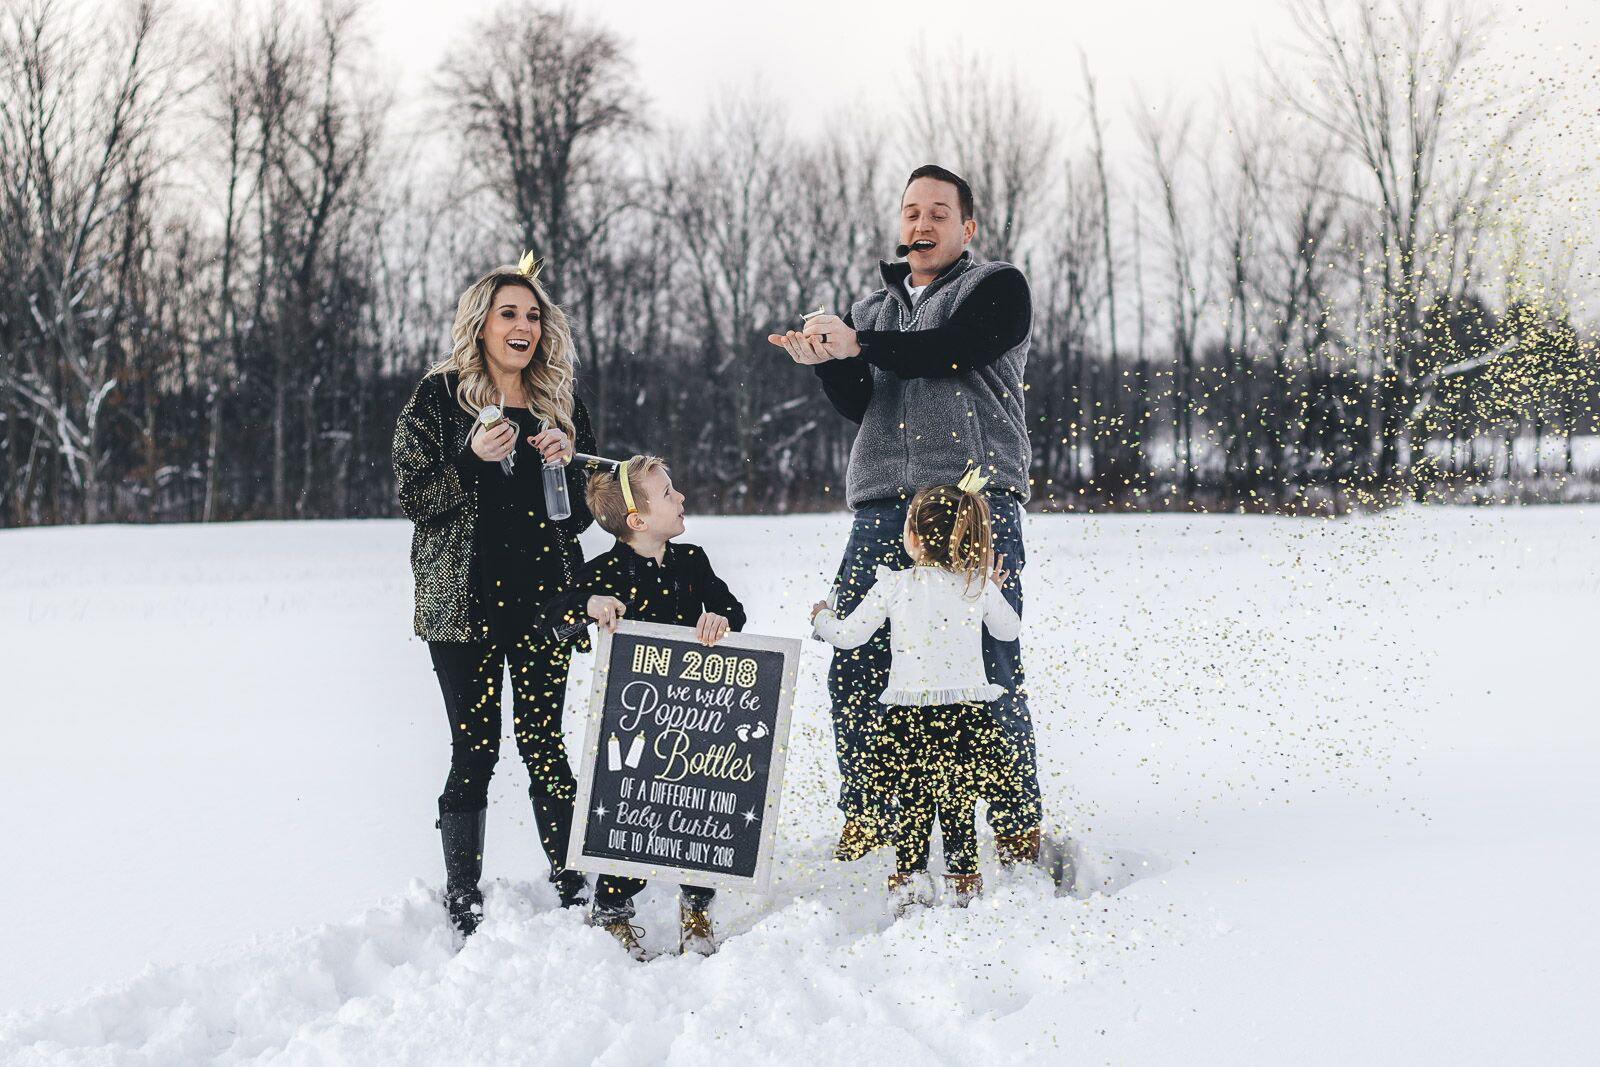 Our New Years Eve announcement and how we found out we were pregnant